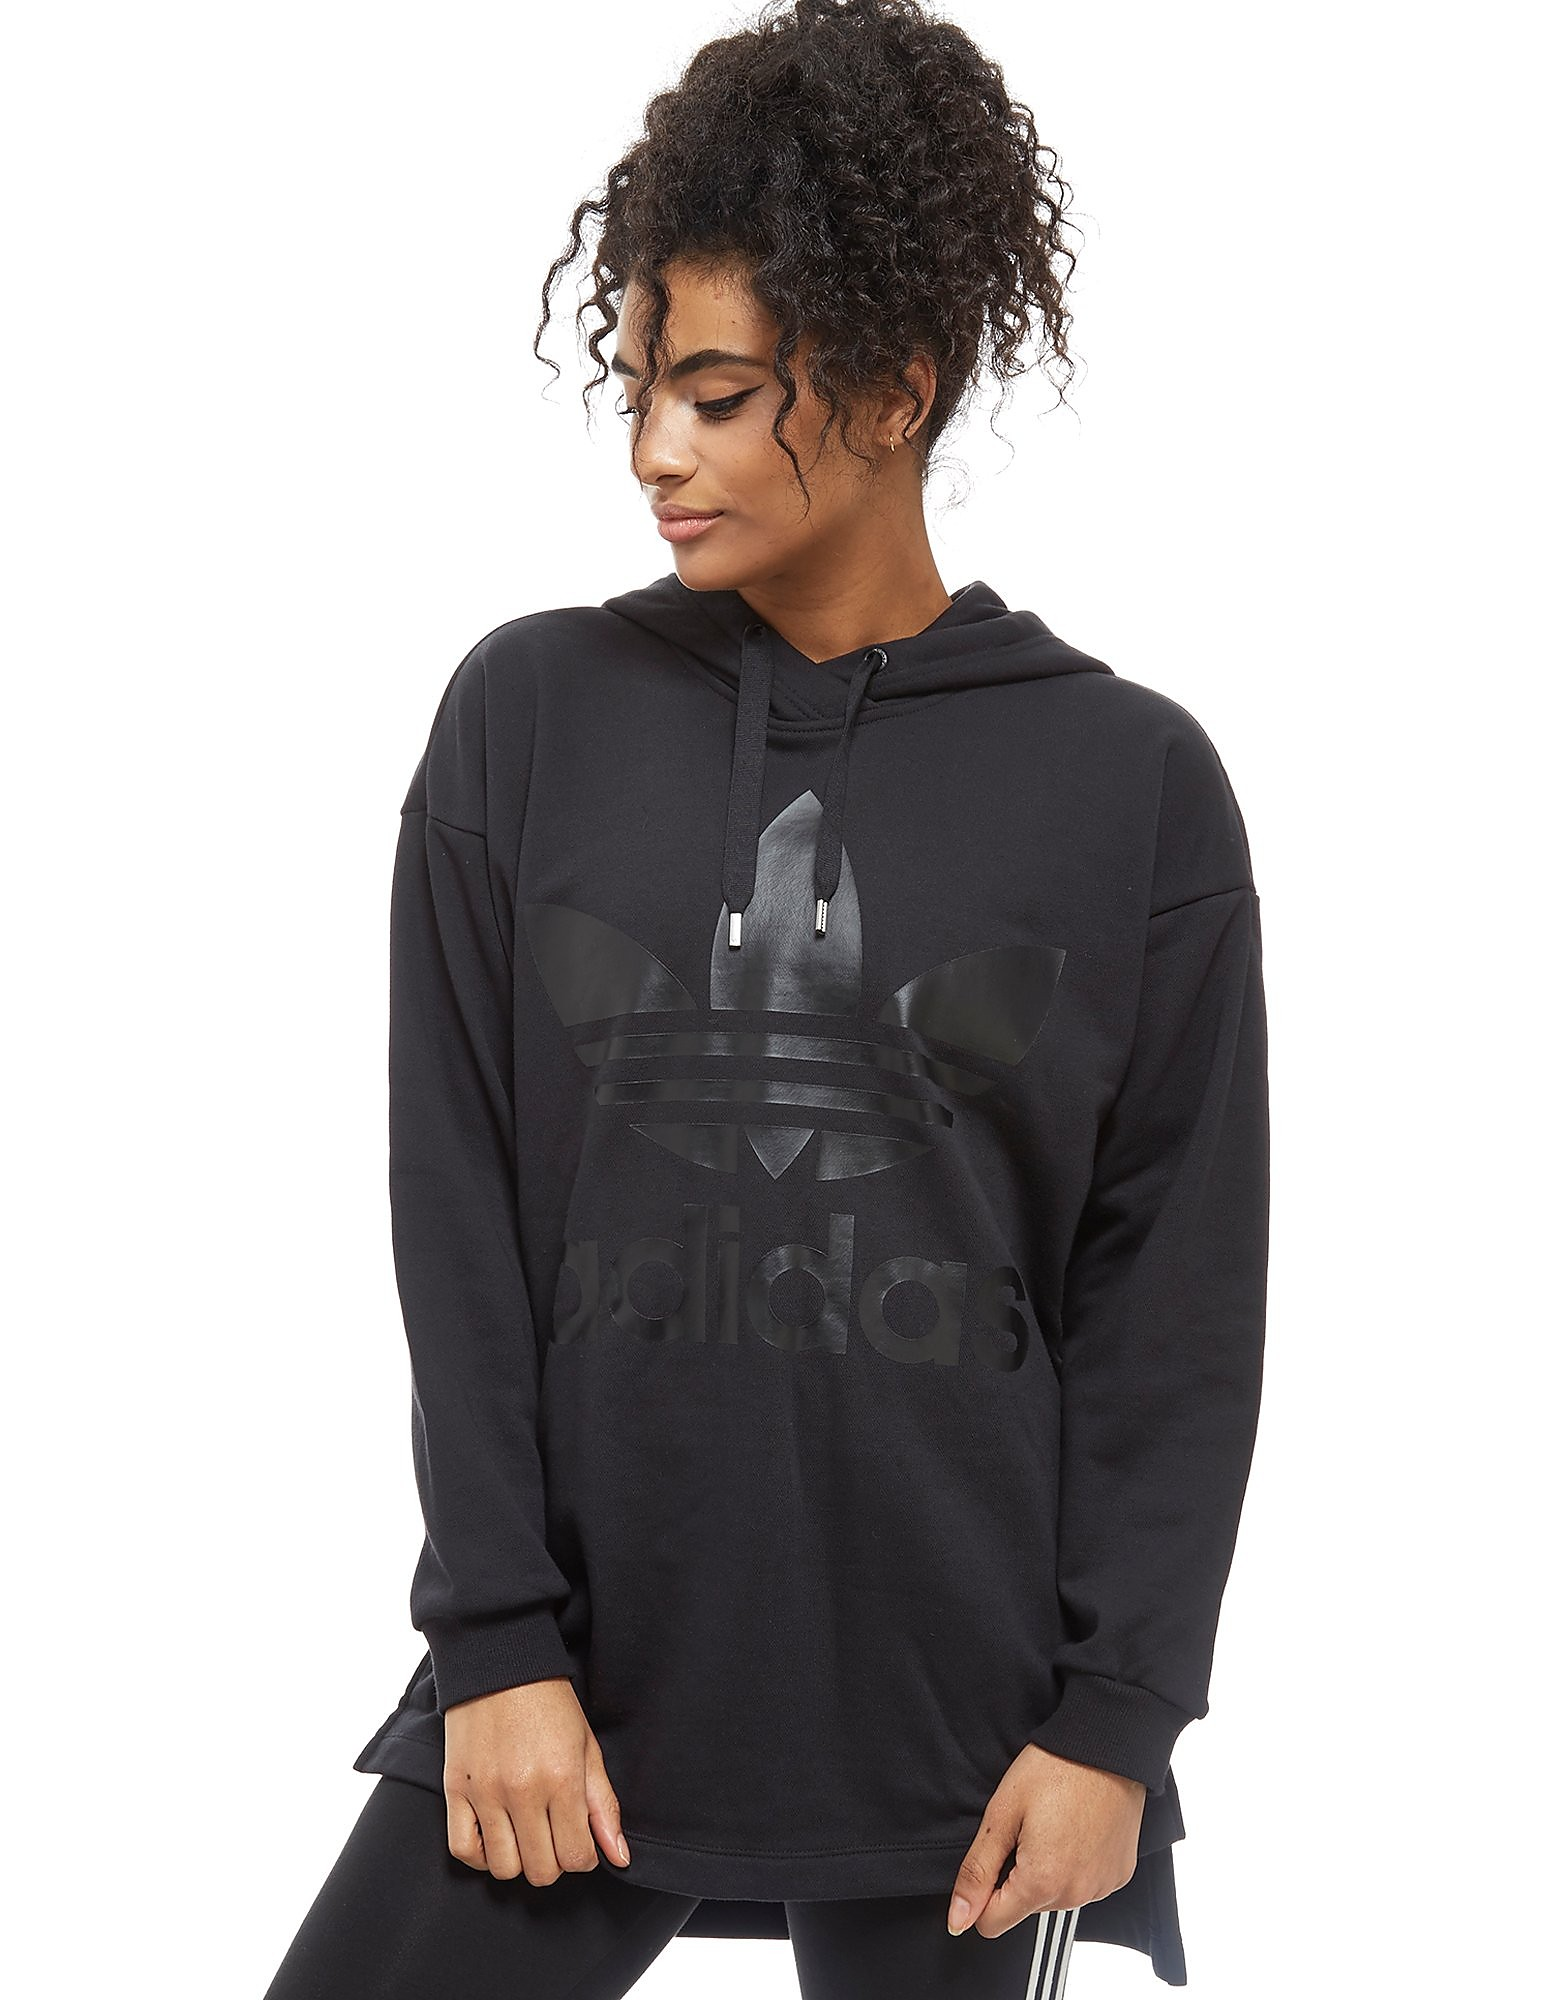 adidas Originals Trefoil Hoodie Dress